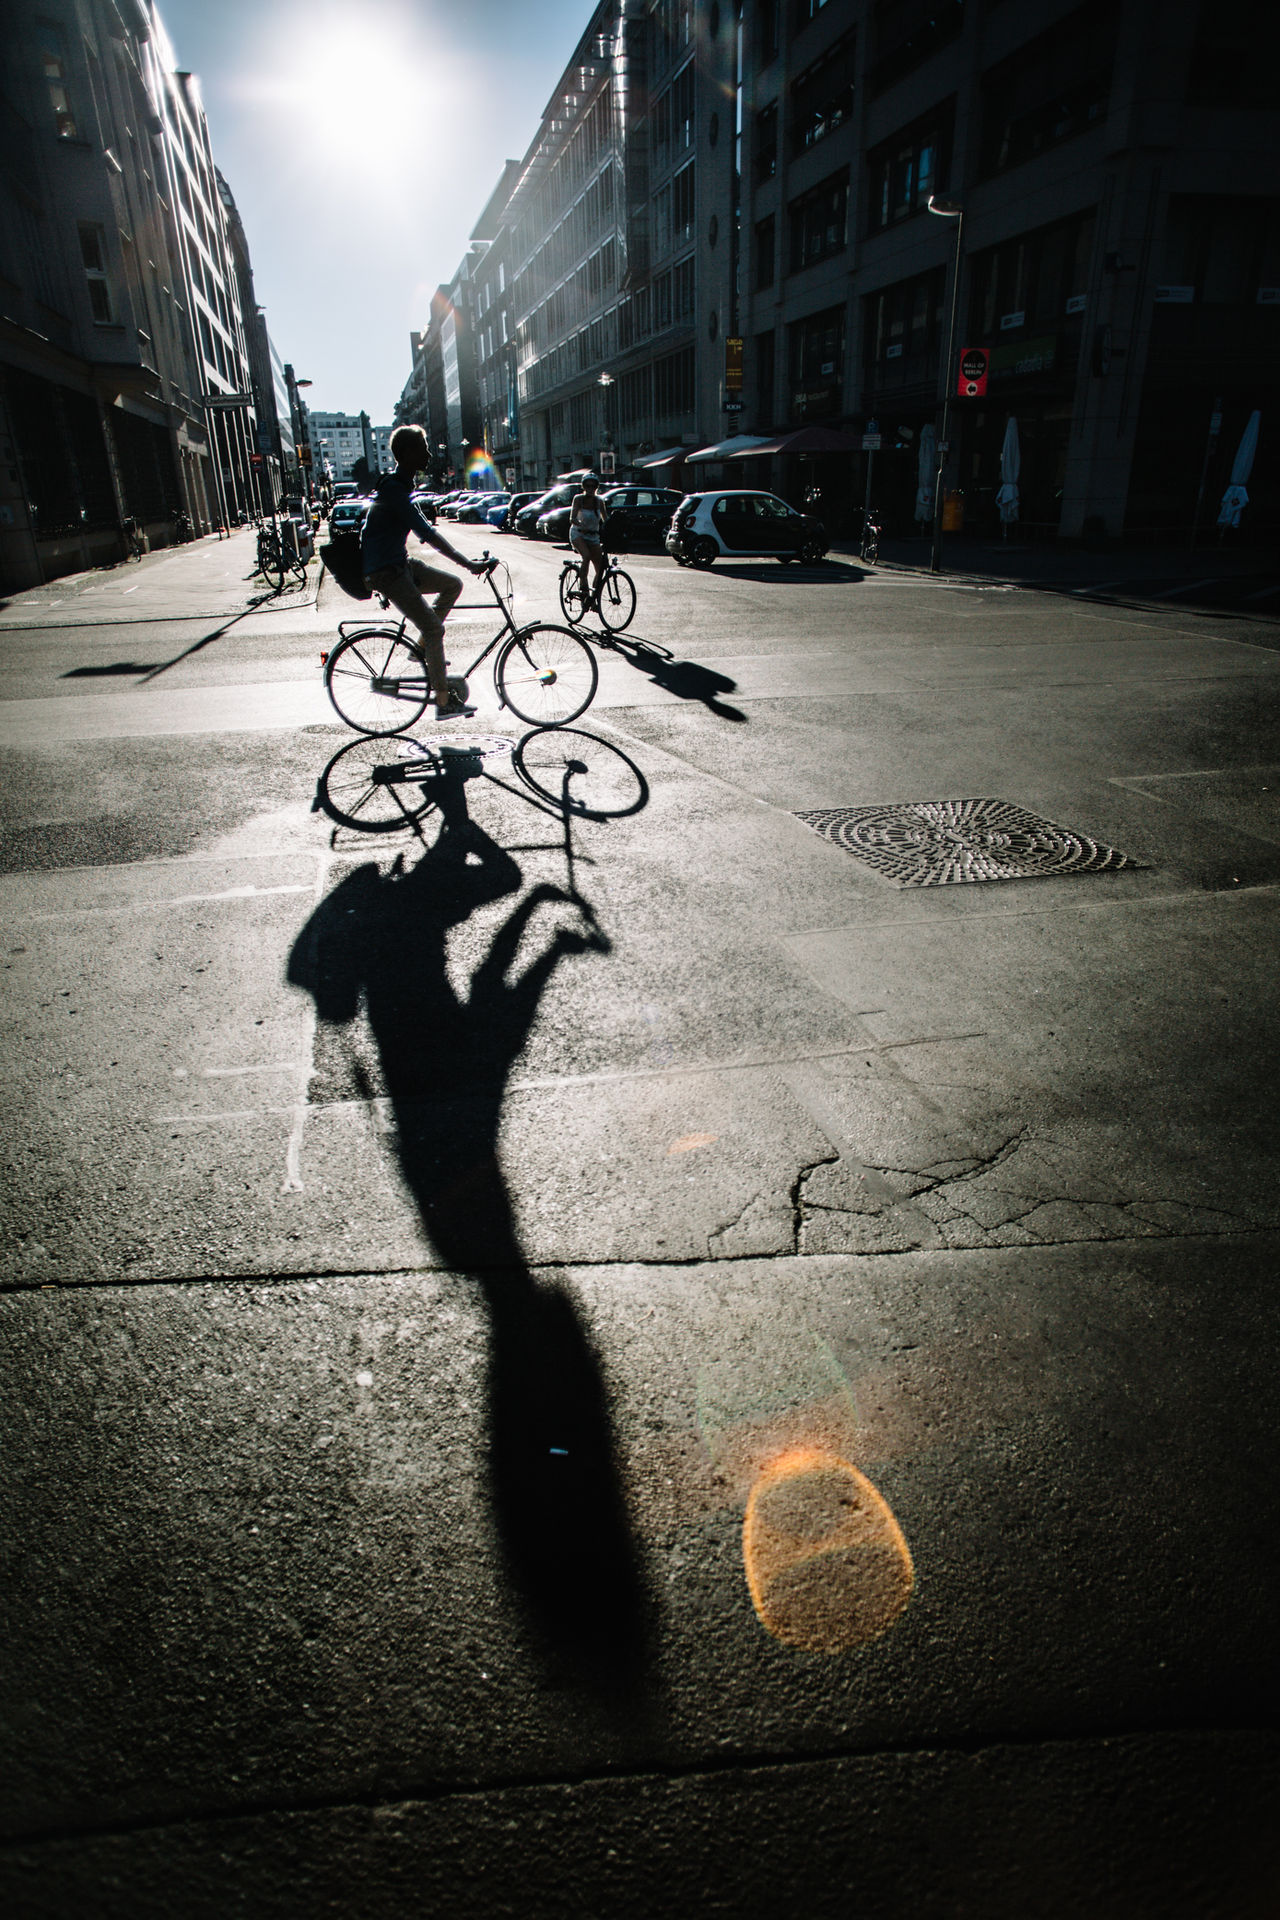 Architecture Bicycles City City Life Day Lifestyles Men Outdoors Shadow Street Sunlight The Street Photographer - 2017 EyeEm Awards The Way